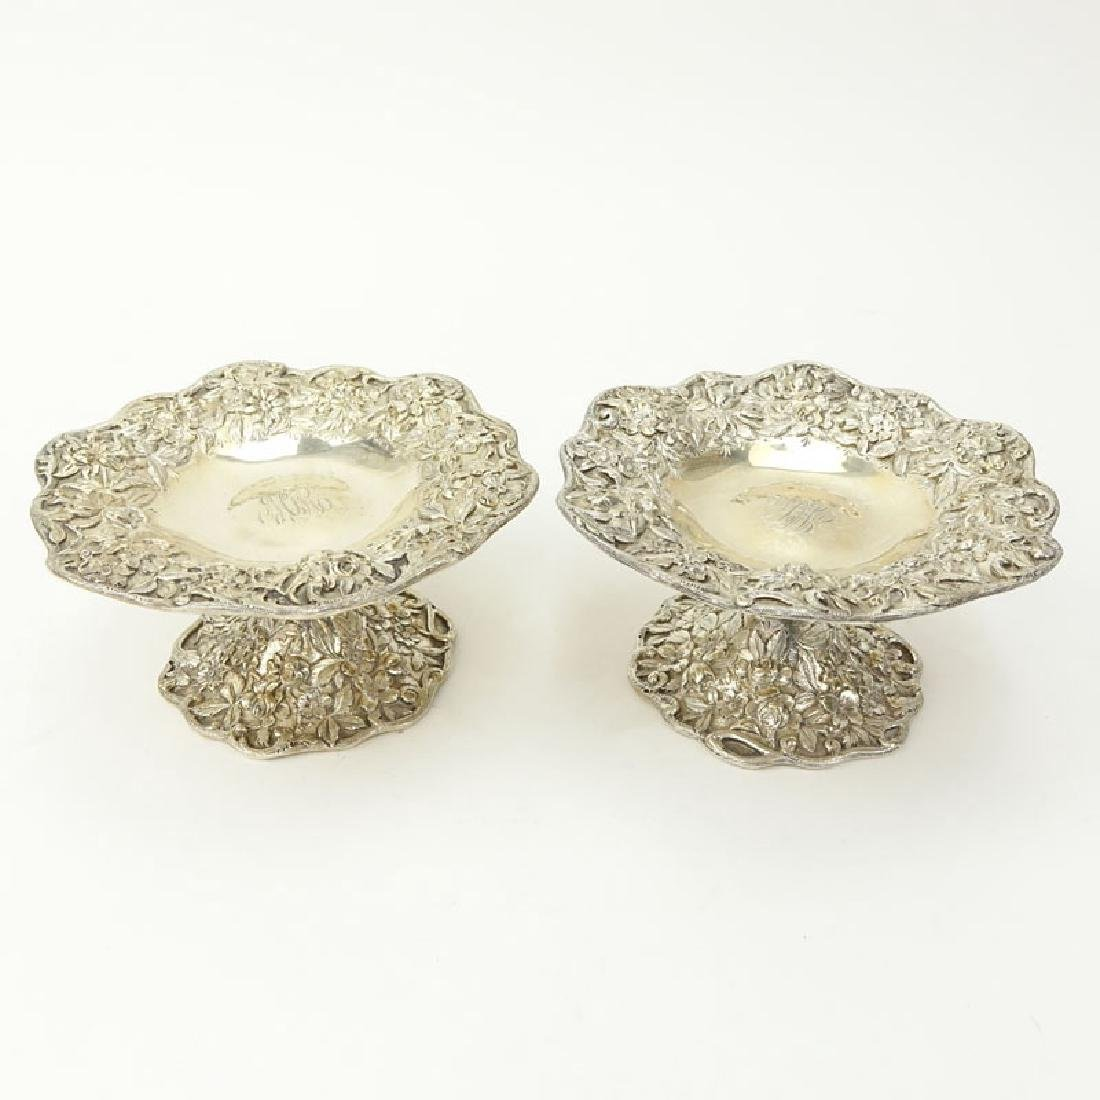 S. Kirk & Son Sterling Silver Repousse Compotes.